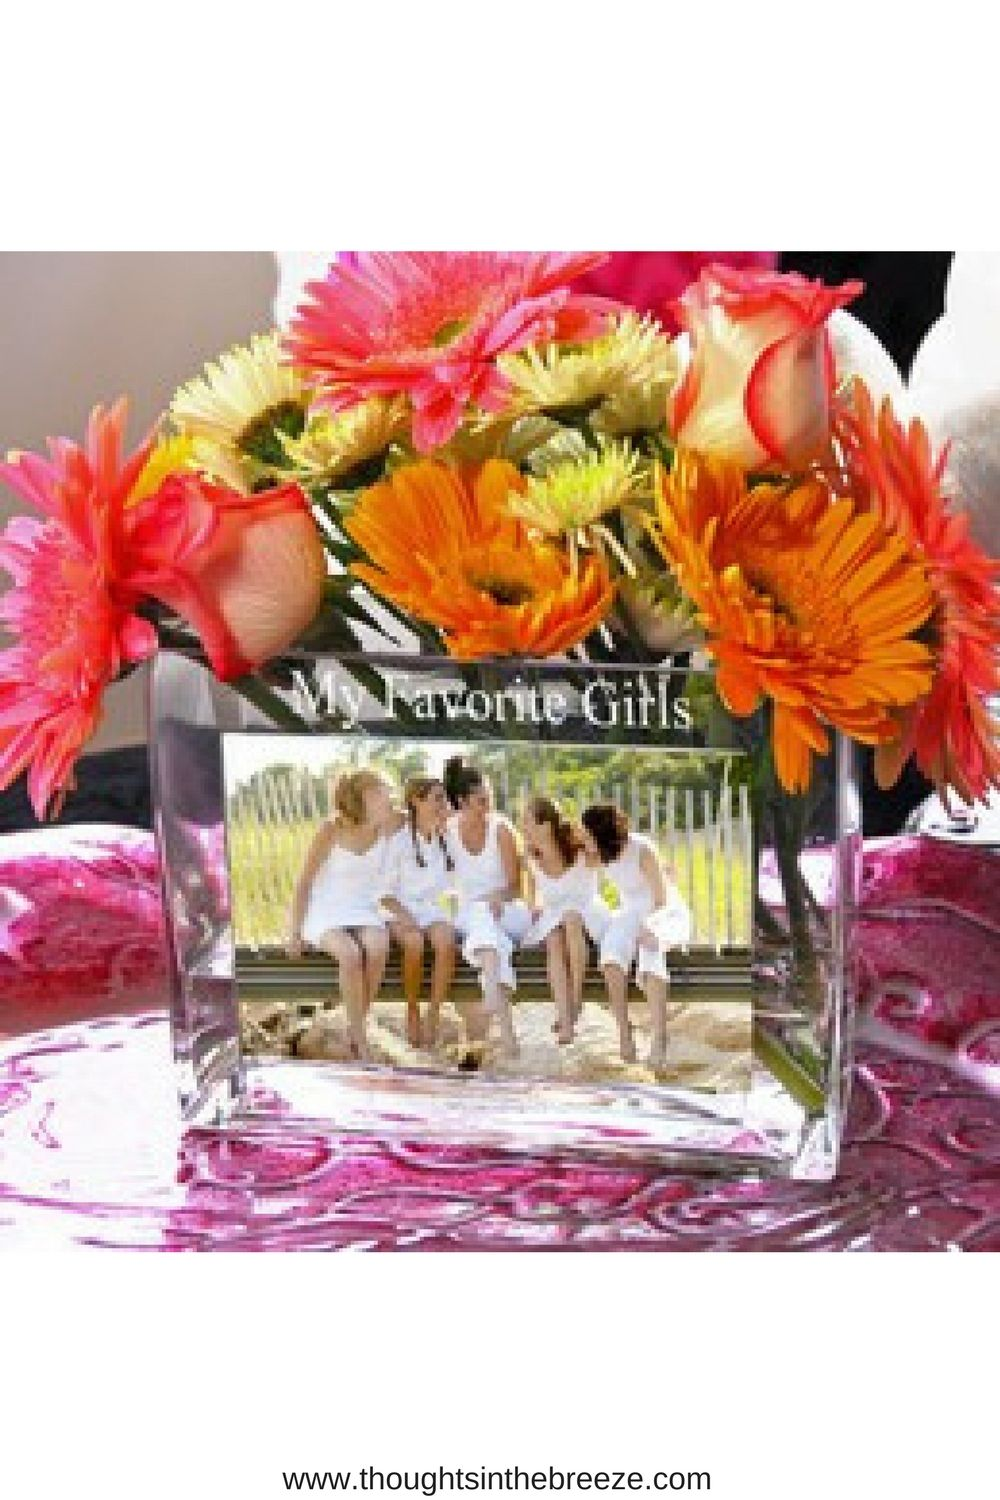 gallery personalised custom wedding flower gifts item for gift personalized vase display